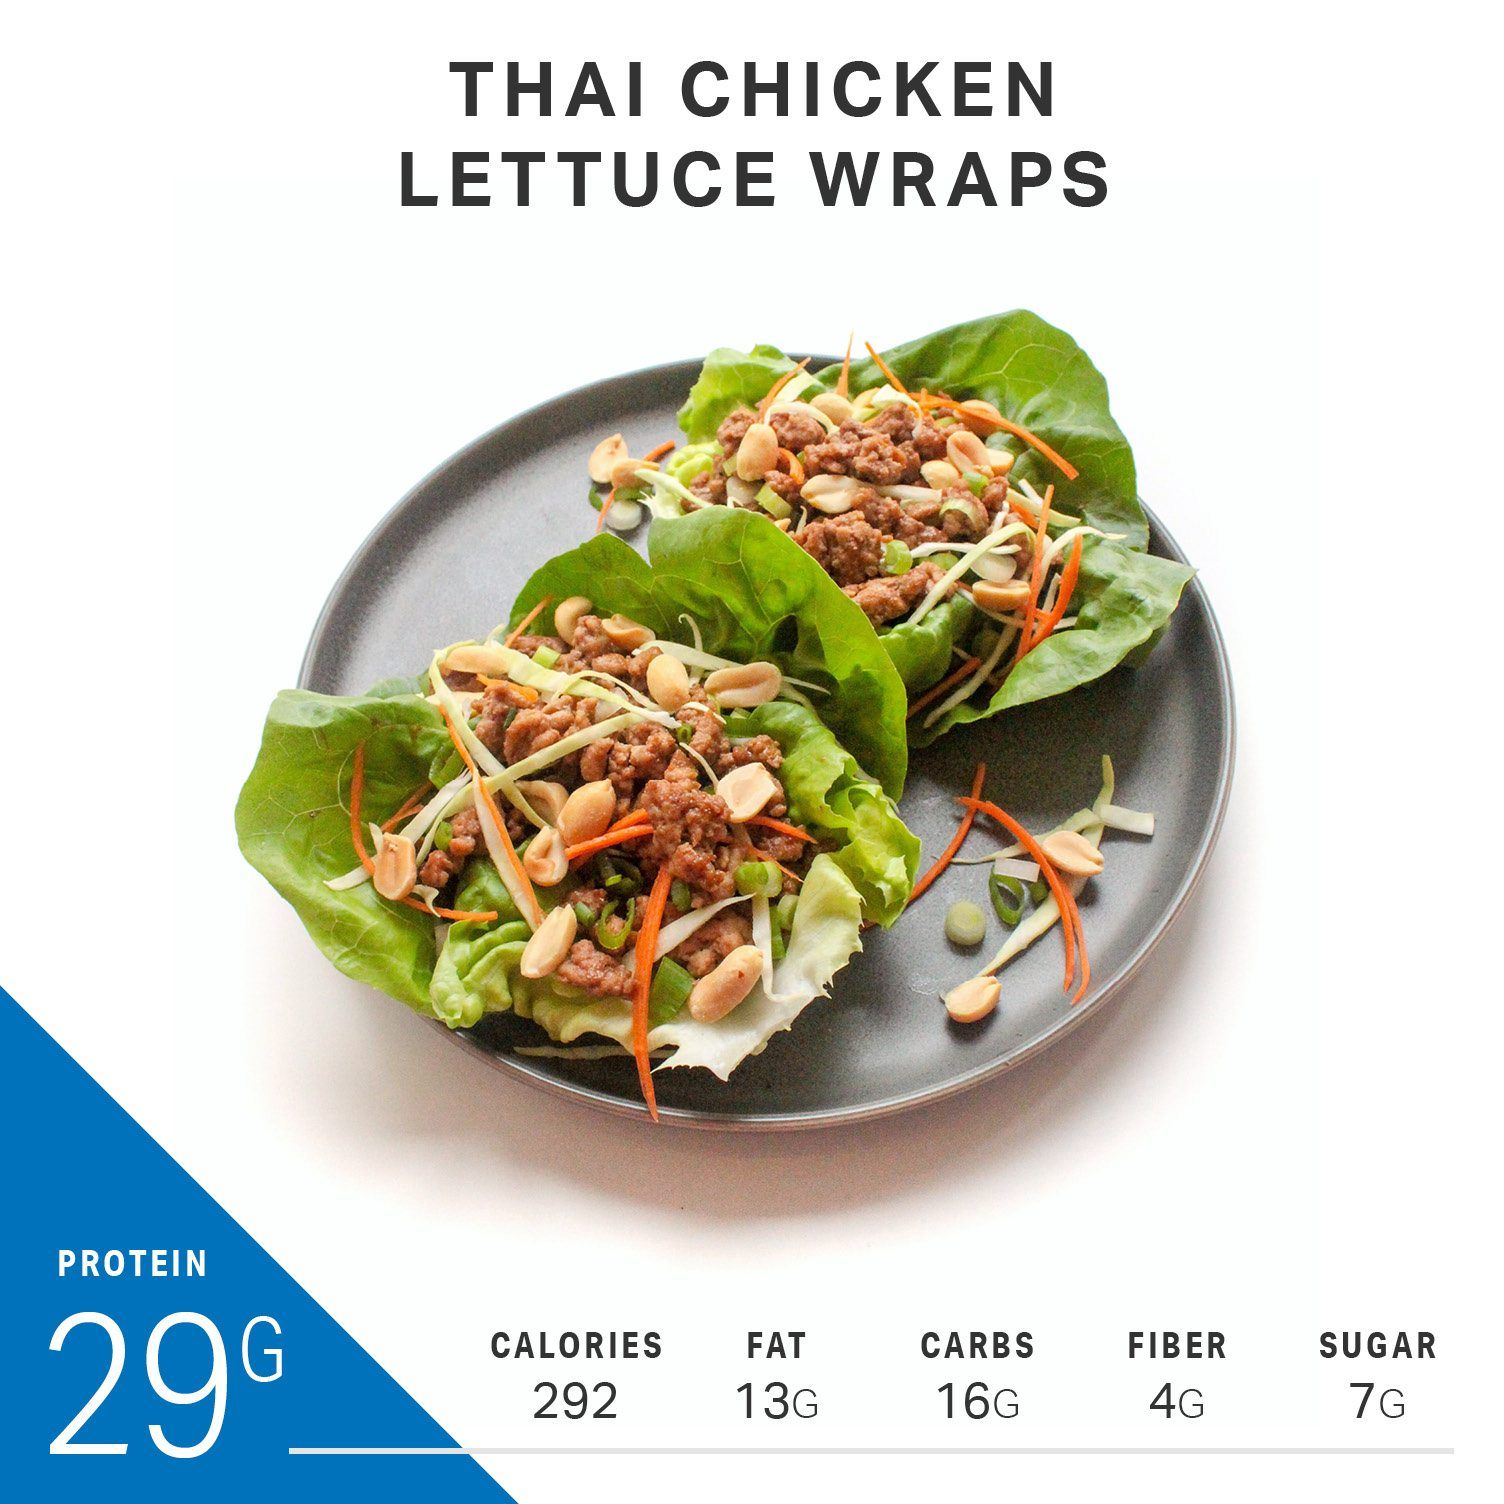 What Lunch With 30 Grams of Protein Looks Like | Weight Loss | MyFitnessPal